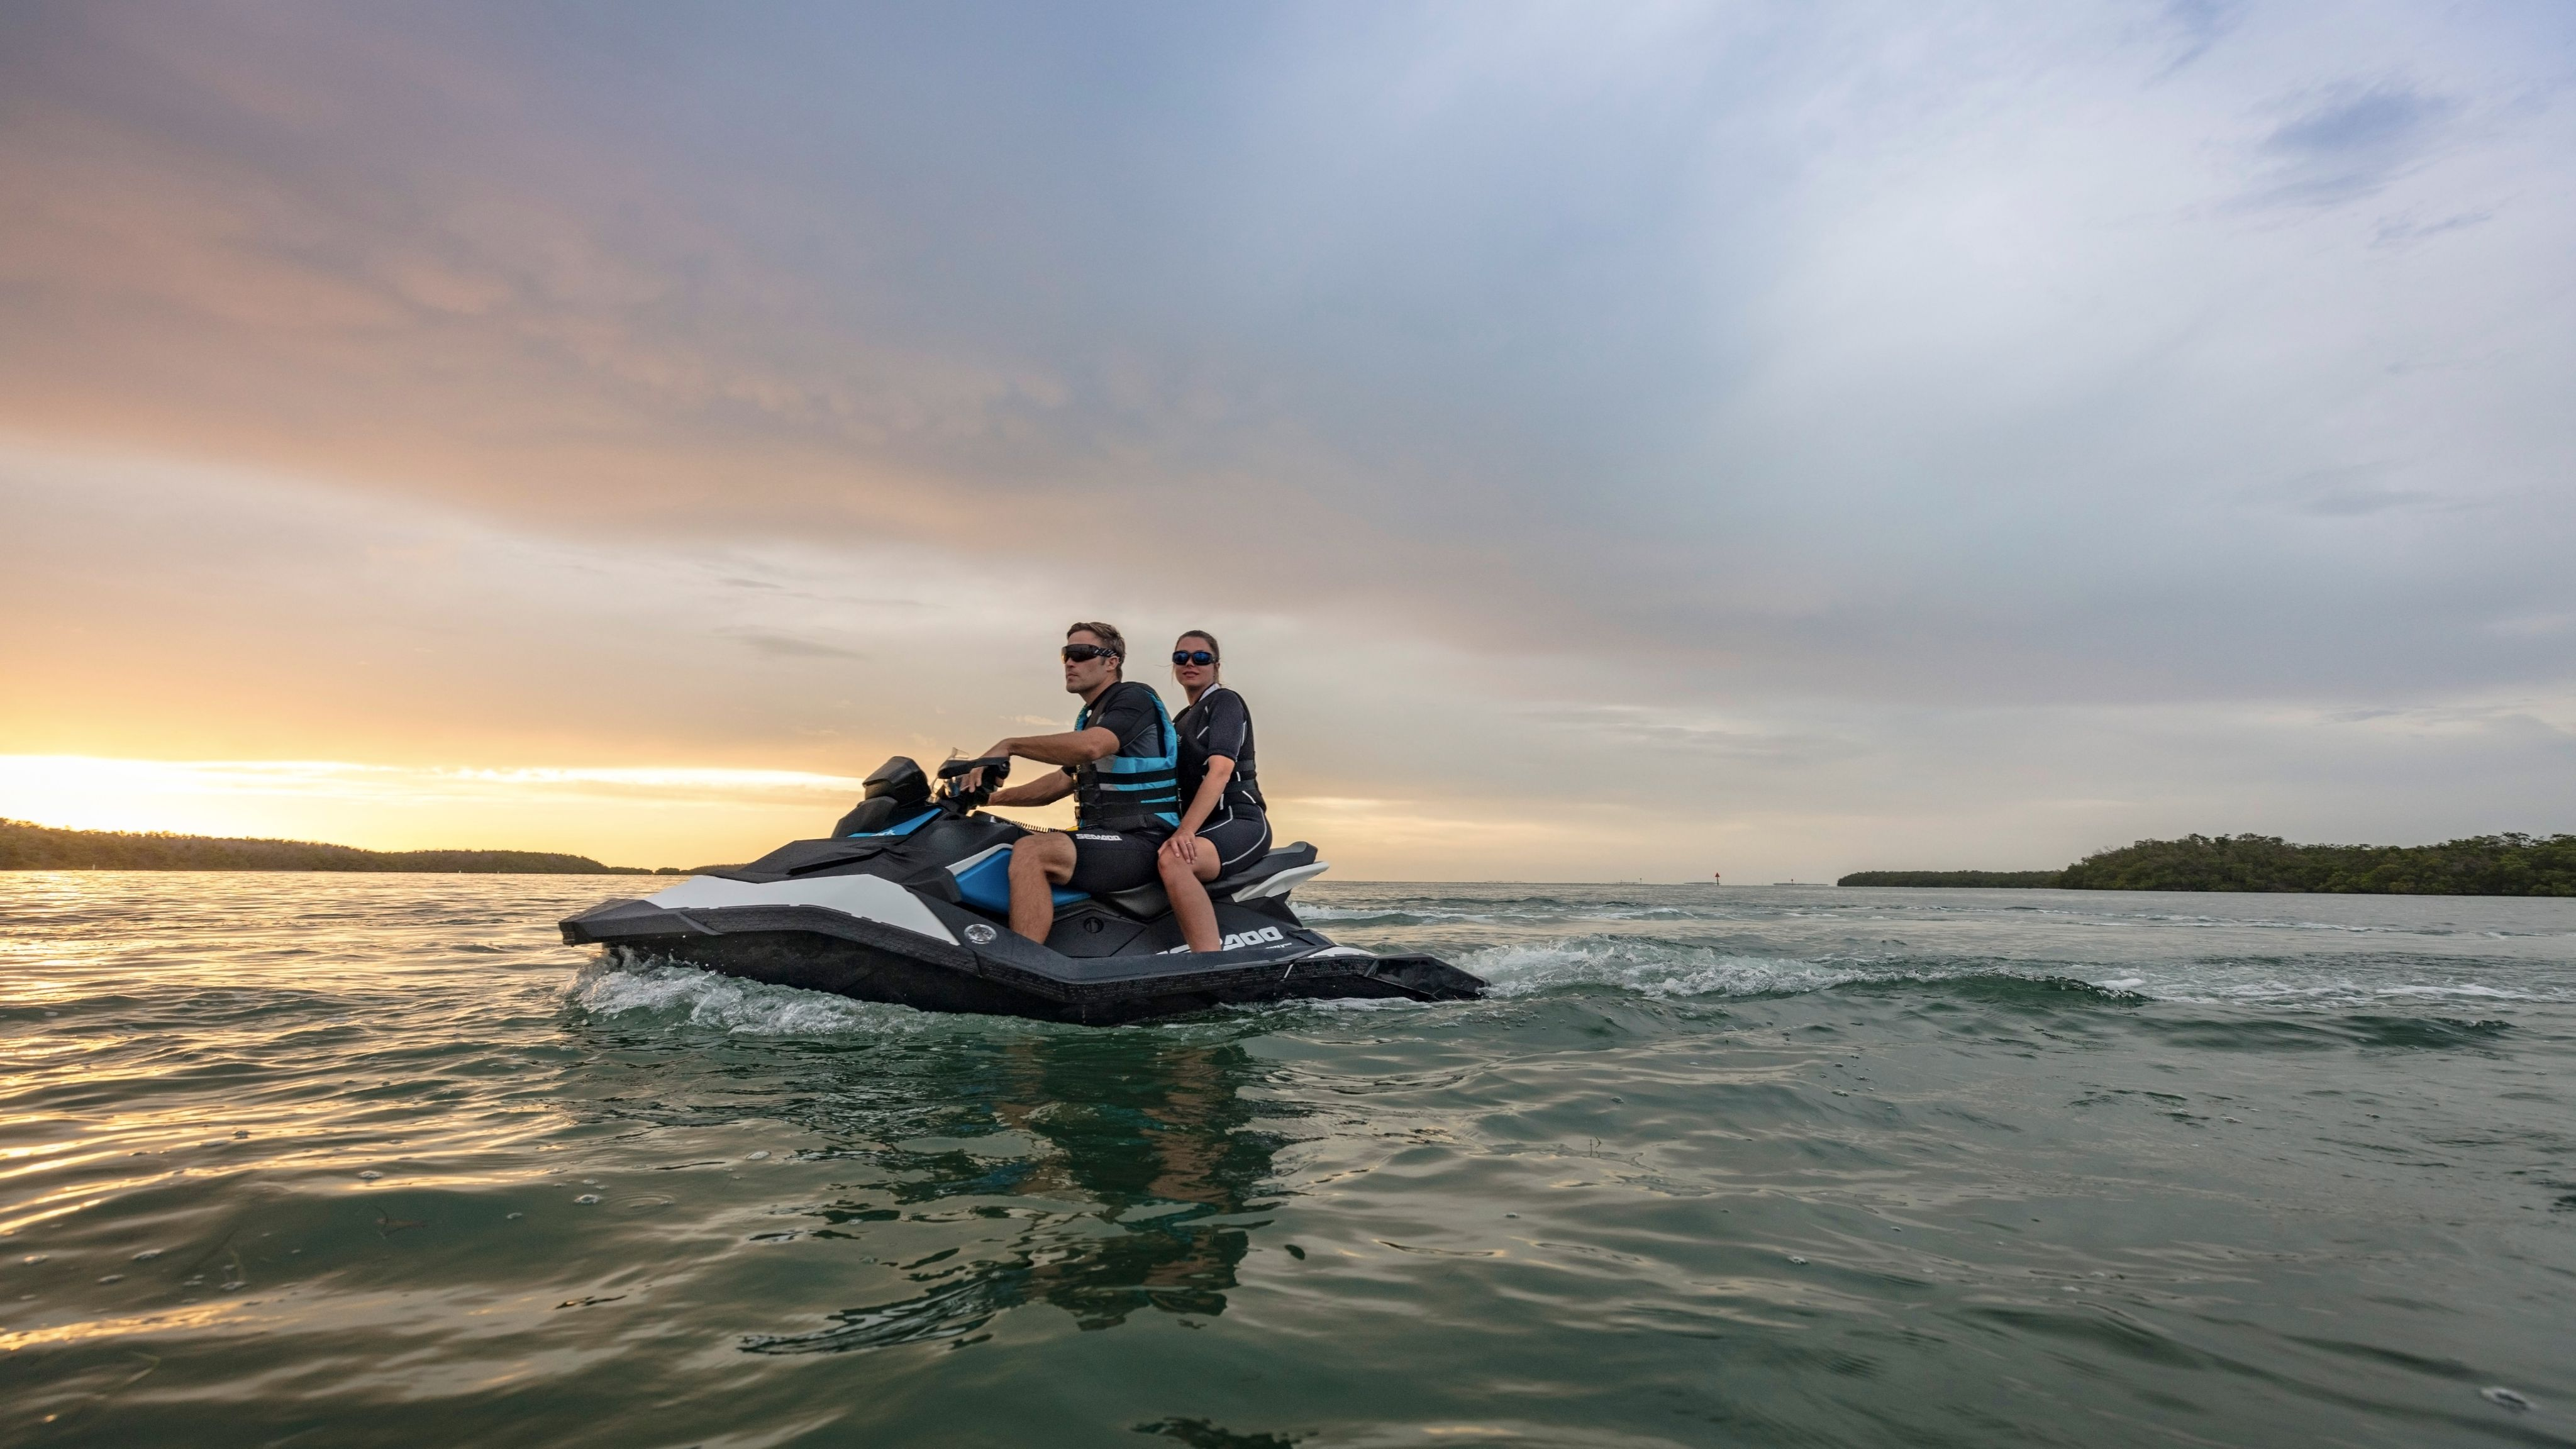 Man and women on a Sea-Doo